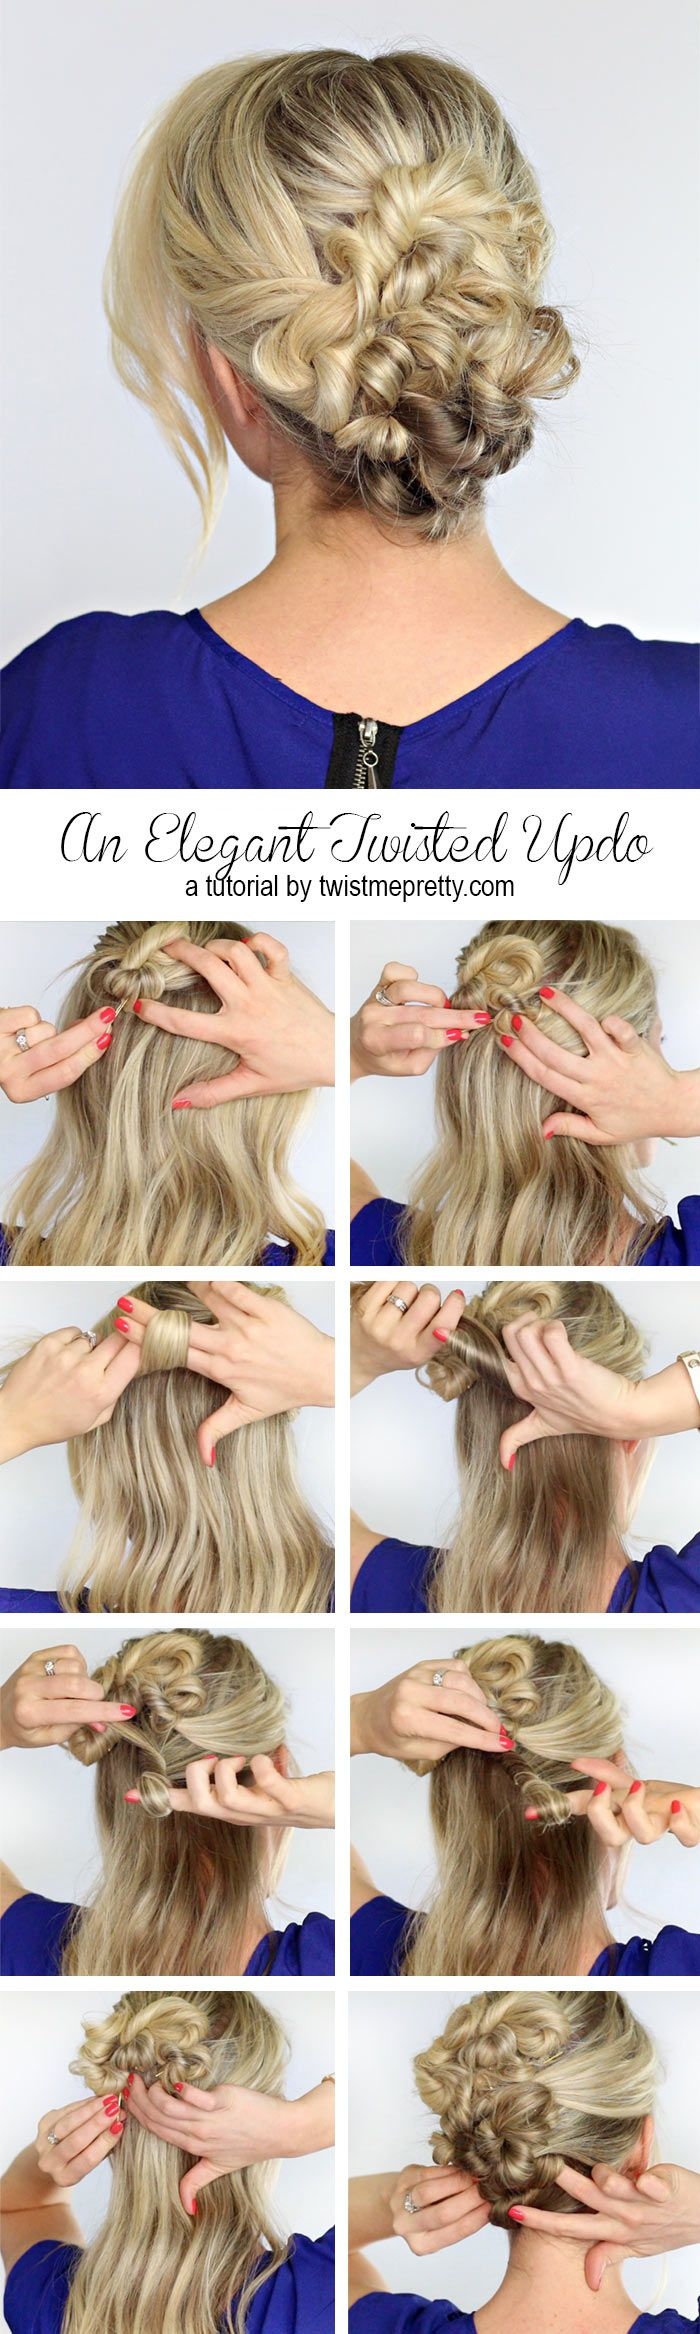 Long Hairstyles for Girls Step By Step Tutorial & Trends with Pictures (20)